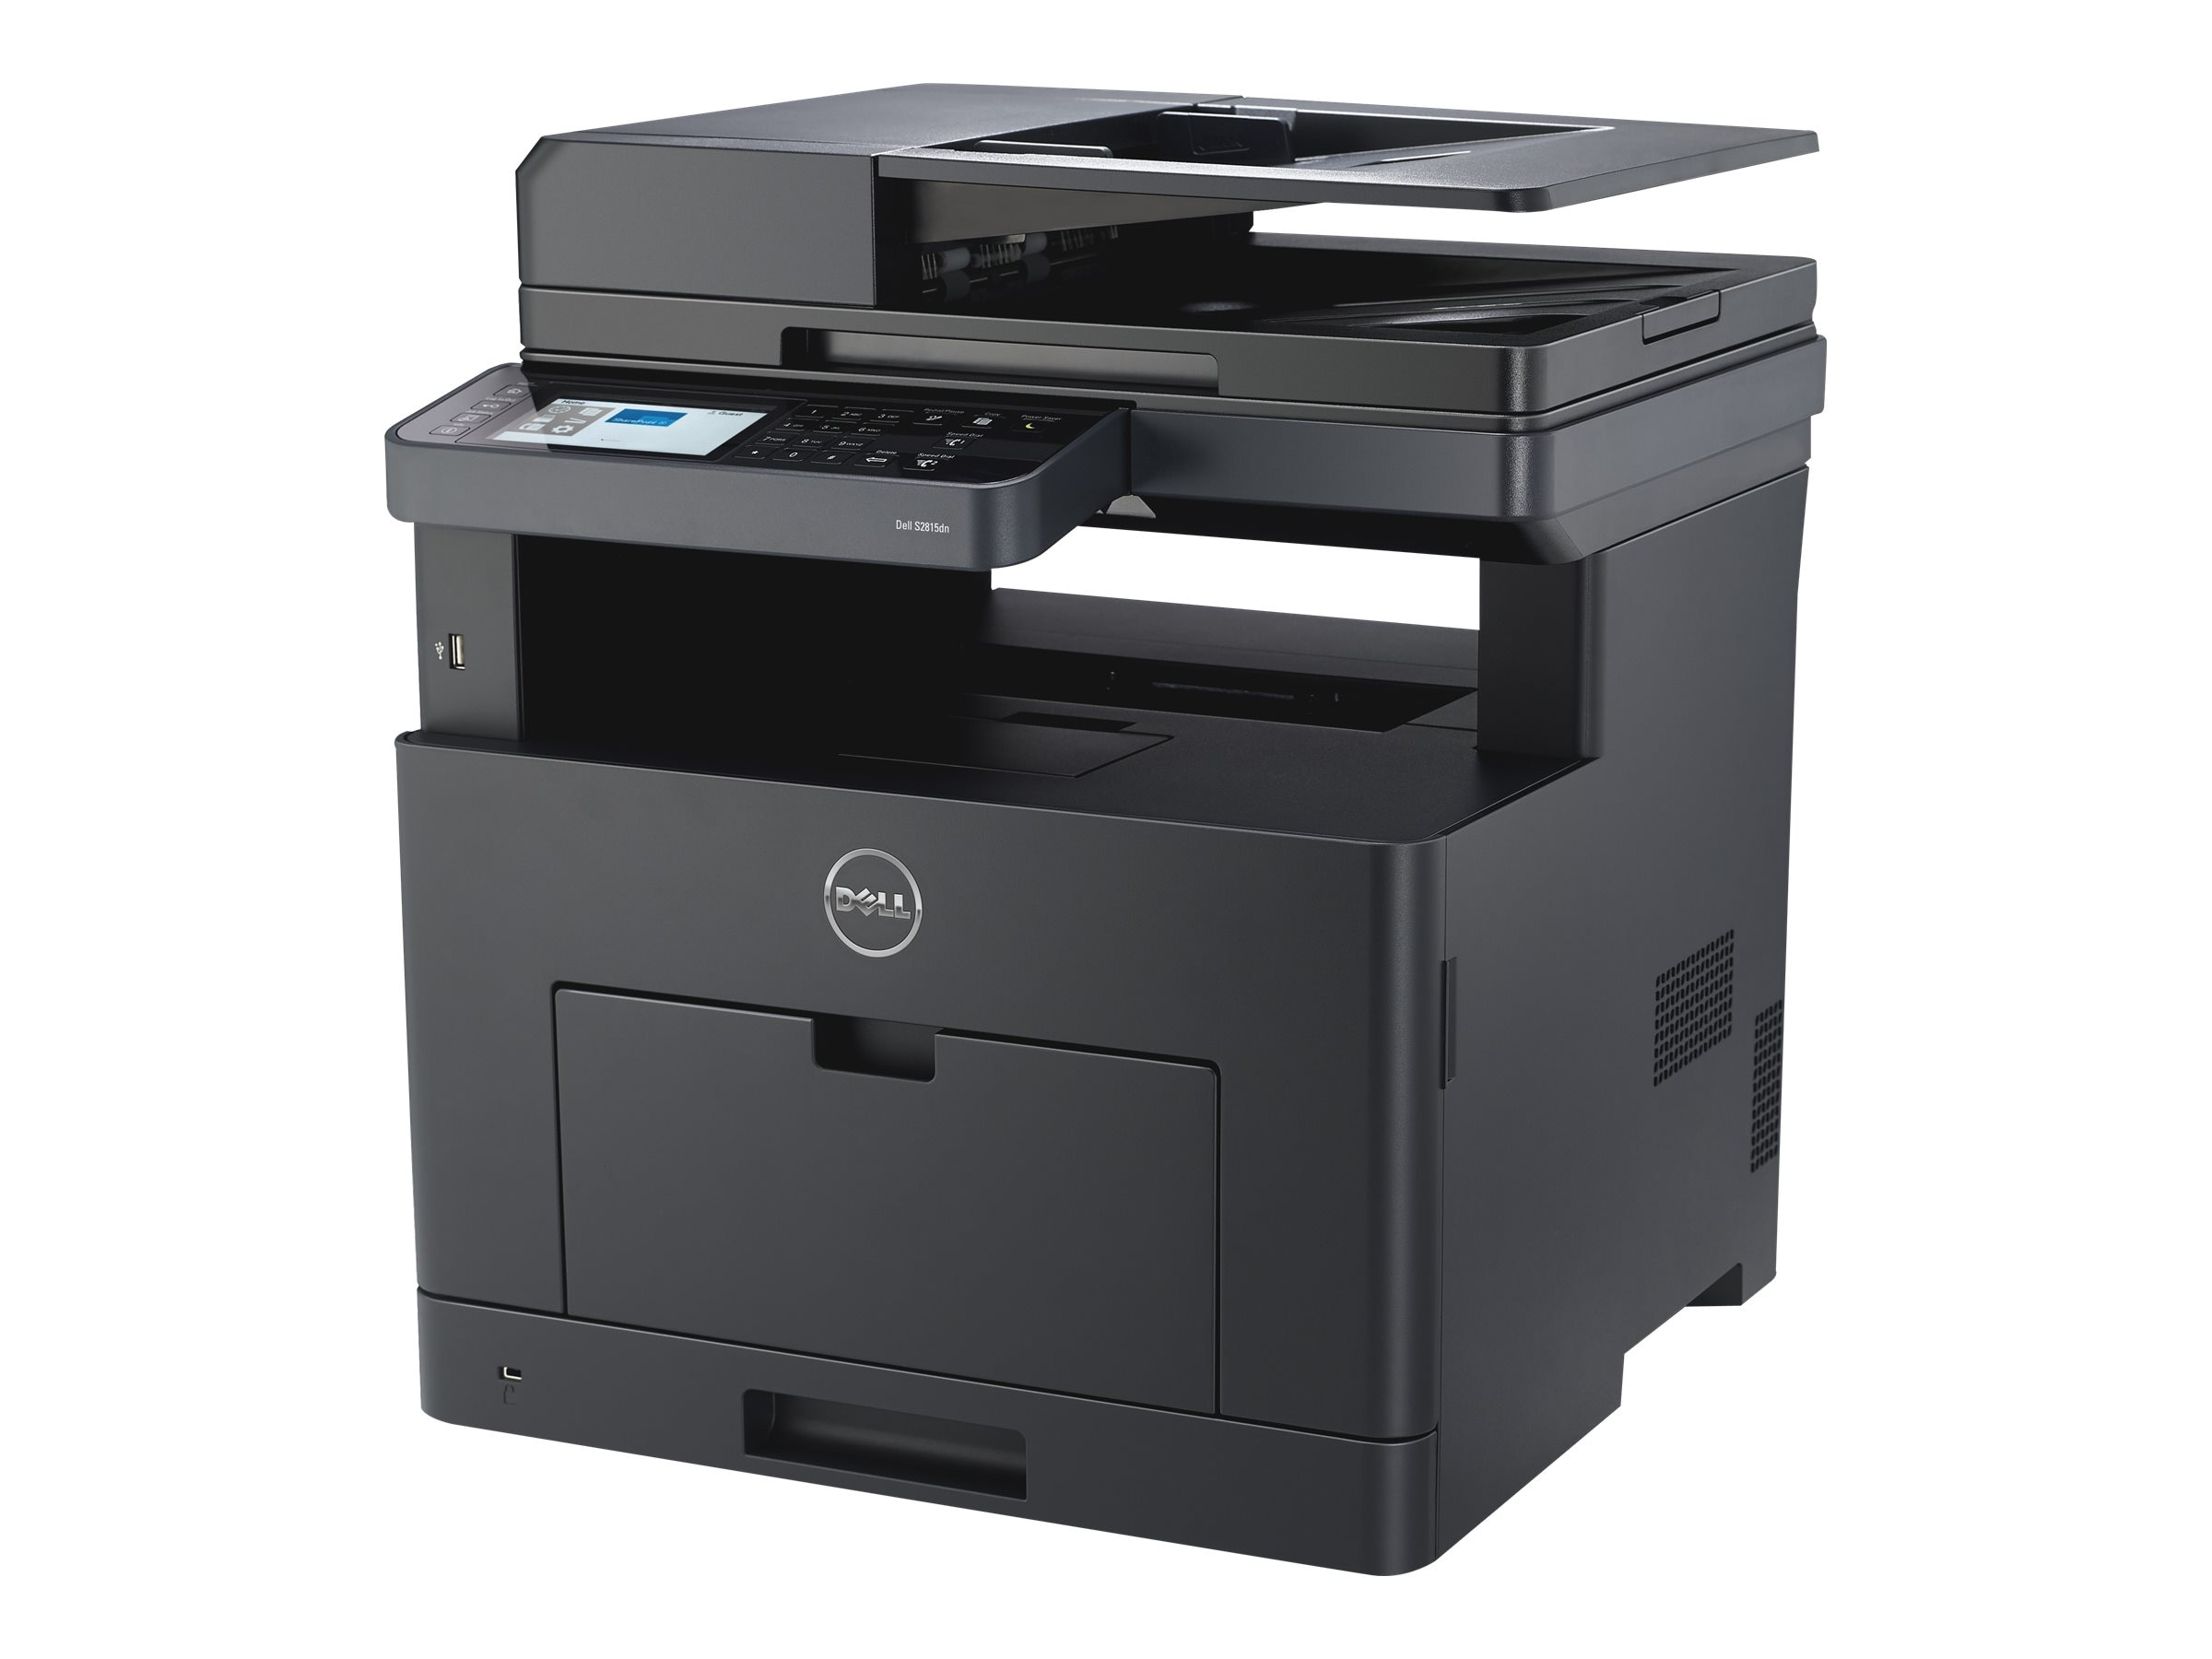 Dell Smart Multifunction Printer - S2815dn, RVHTF, 30833126, MultiFunction - Laser (monochrome)